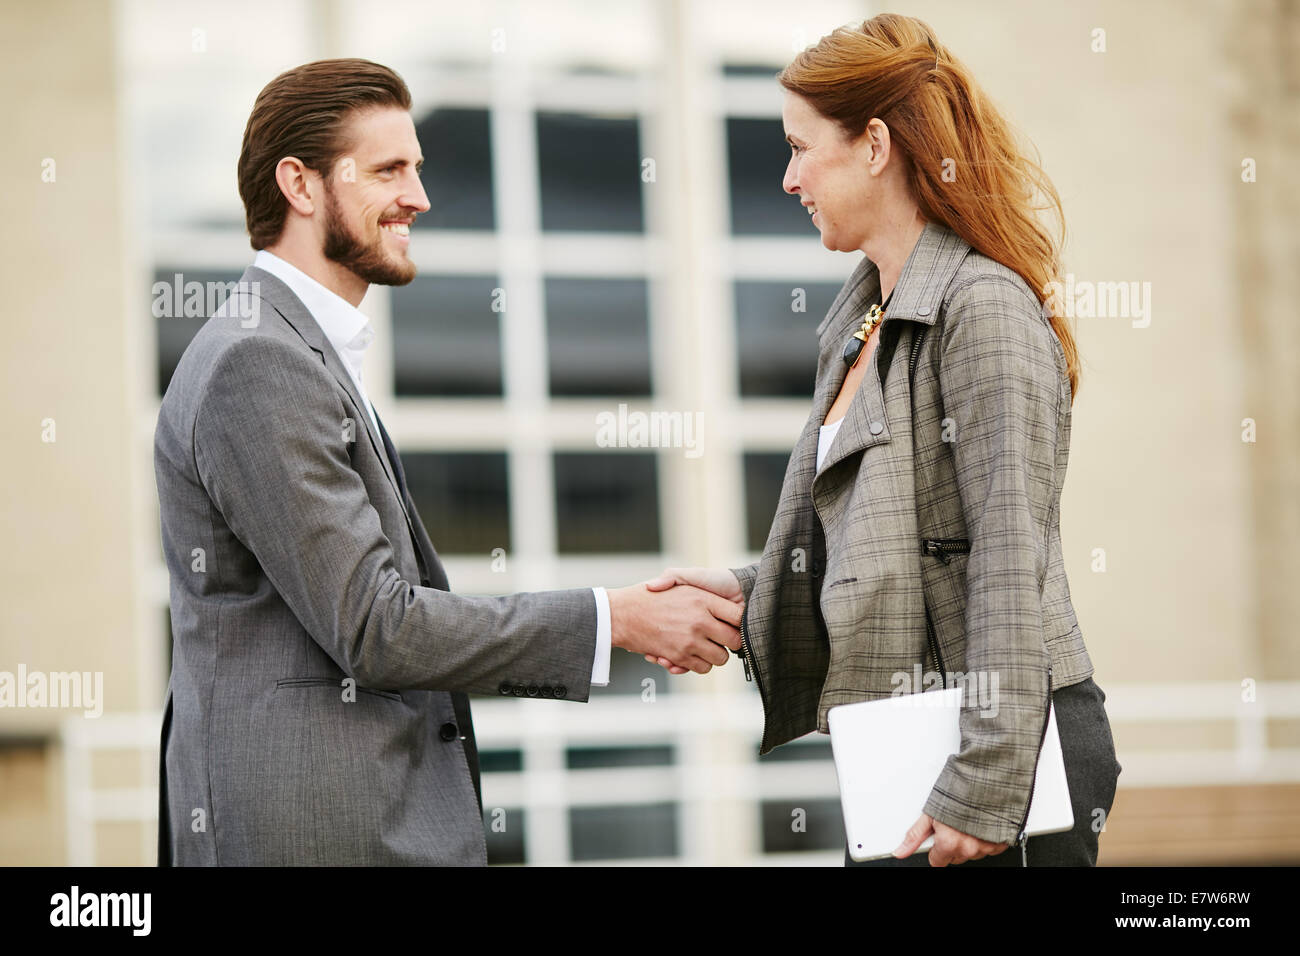 Greeting Each Other Stock Photos Greeting Each Other Stock Images